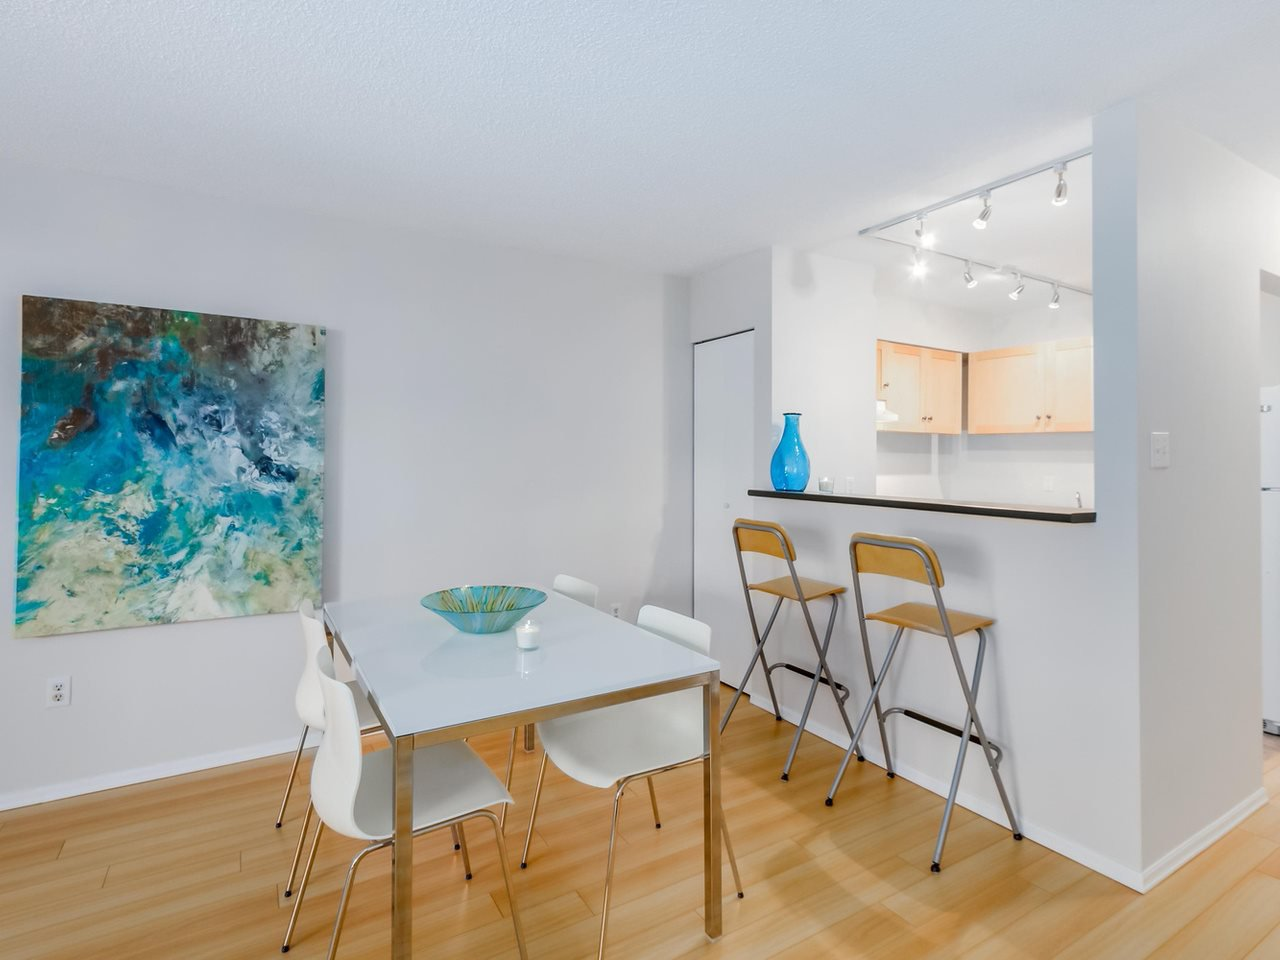 """Photo 13: Photos: 207 1545 E 2ND Avenue in Vancouver: Grandview VE Condo for sale in """"TALISHAN WOODS"""" (Vancouver East)  : MLS®# R2086466"""